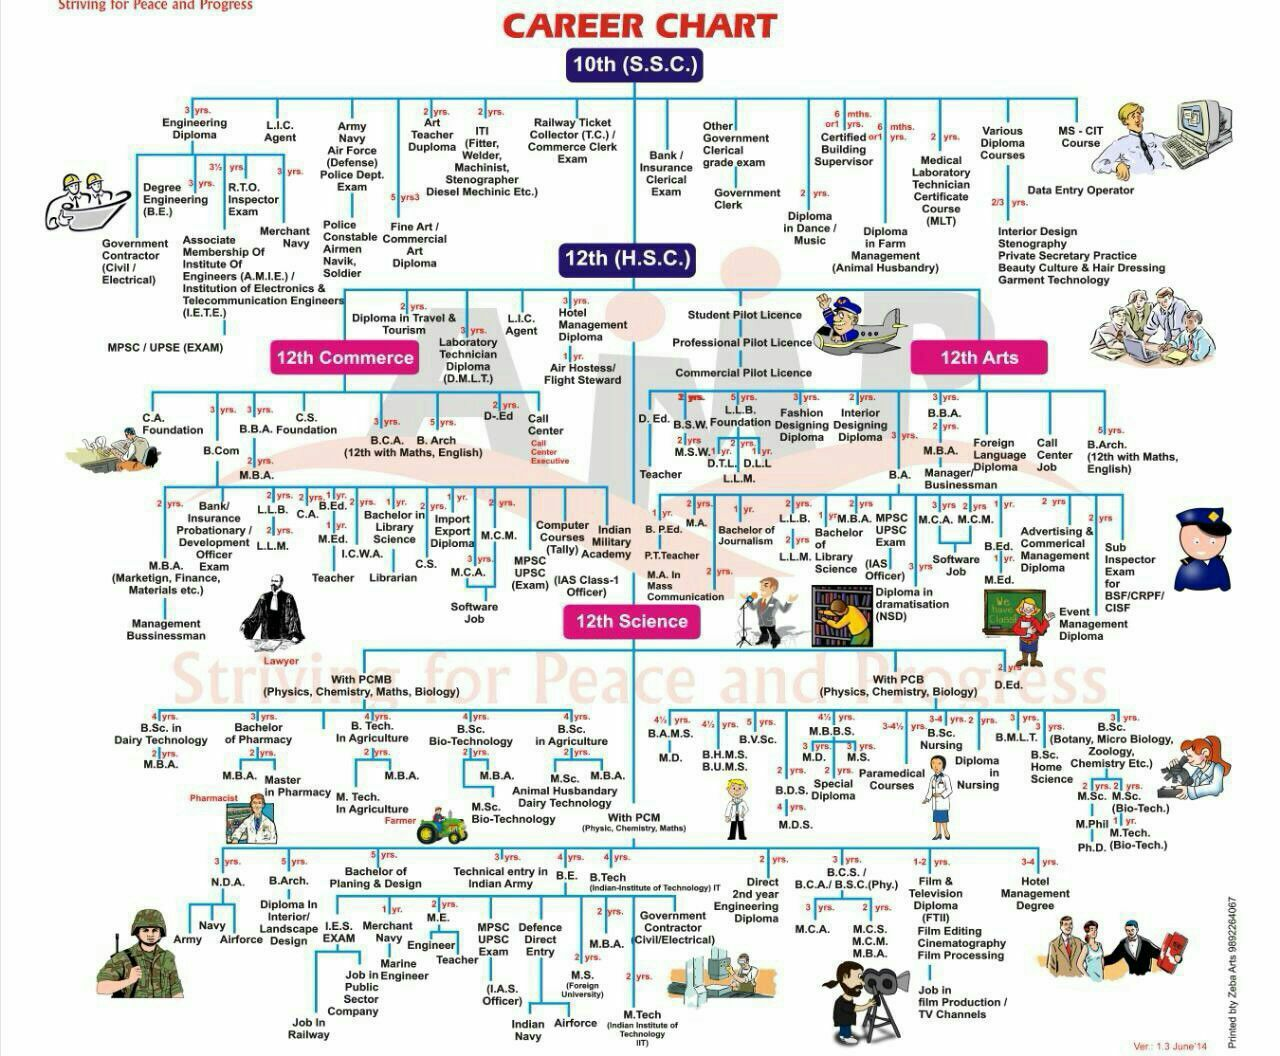 Best career options in india after 10th